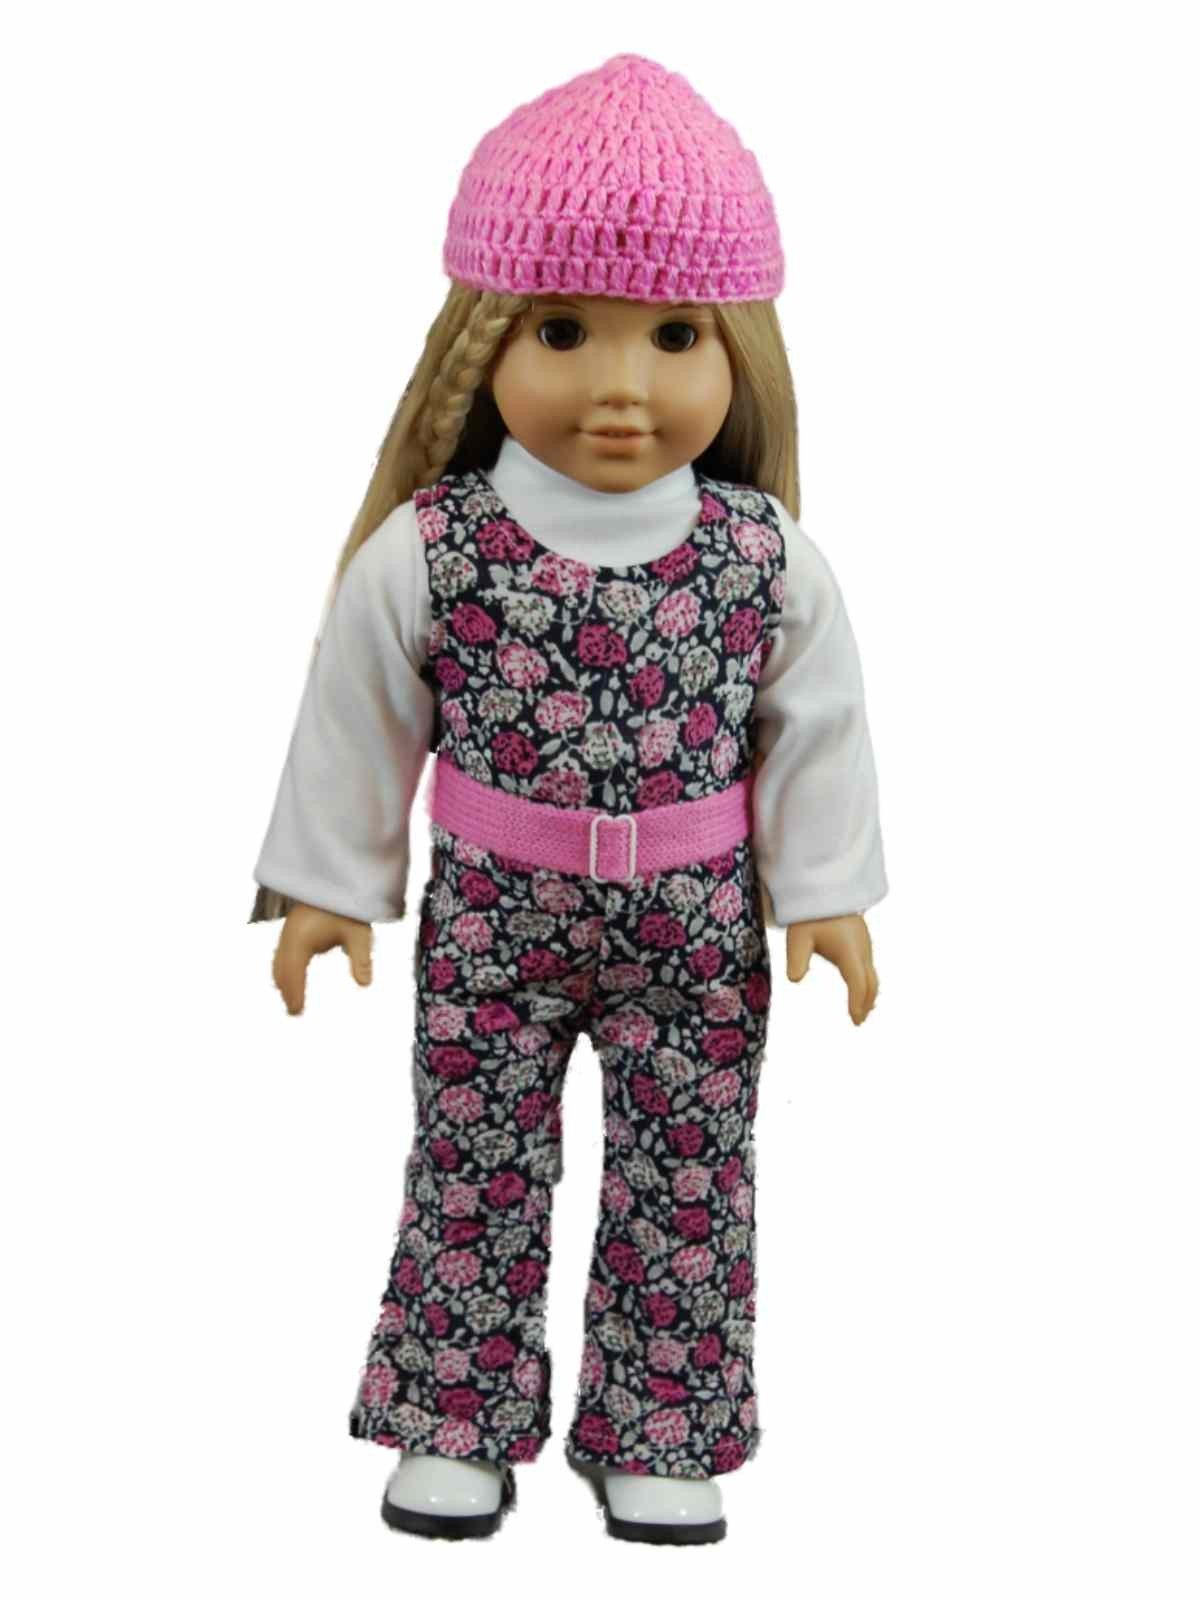 Doll Clothes Patterns By Valspierssews Review Of American: 60's Girl Power Outfit Doll Clothes Fits American Girl¨ Dolls